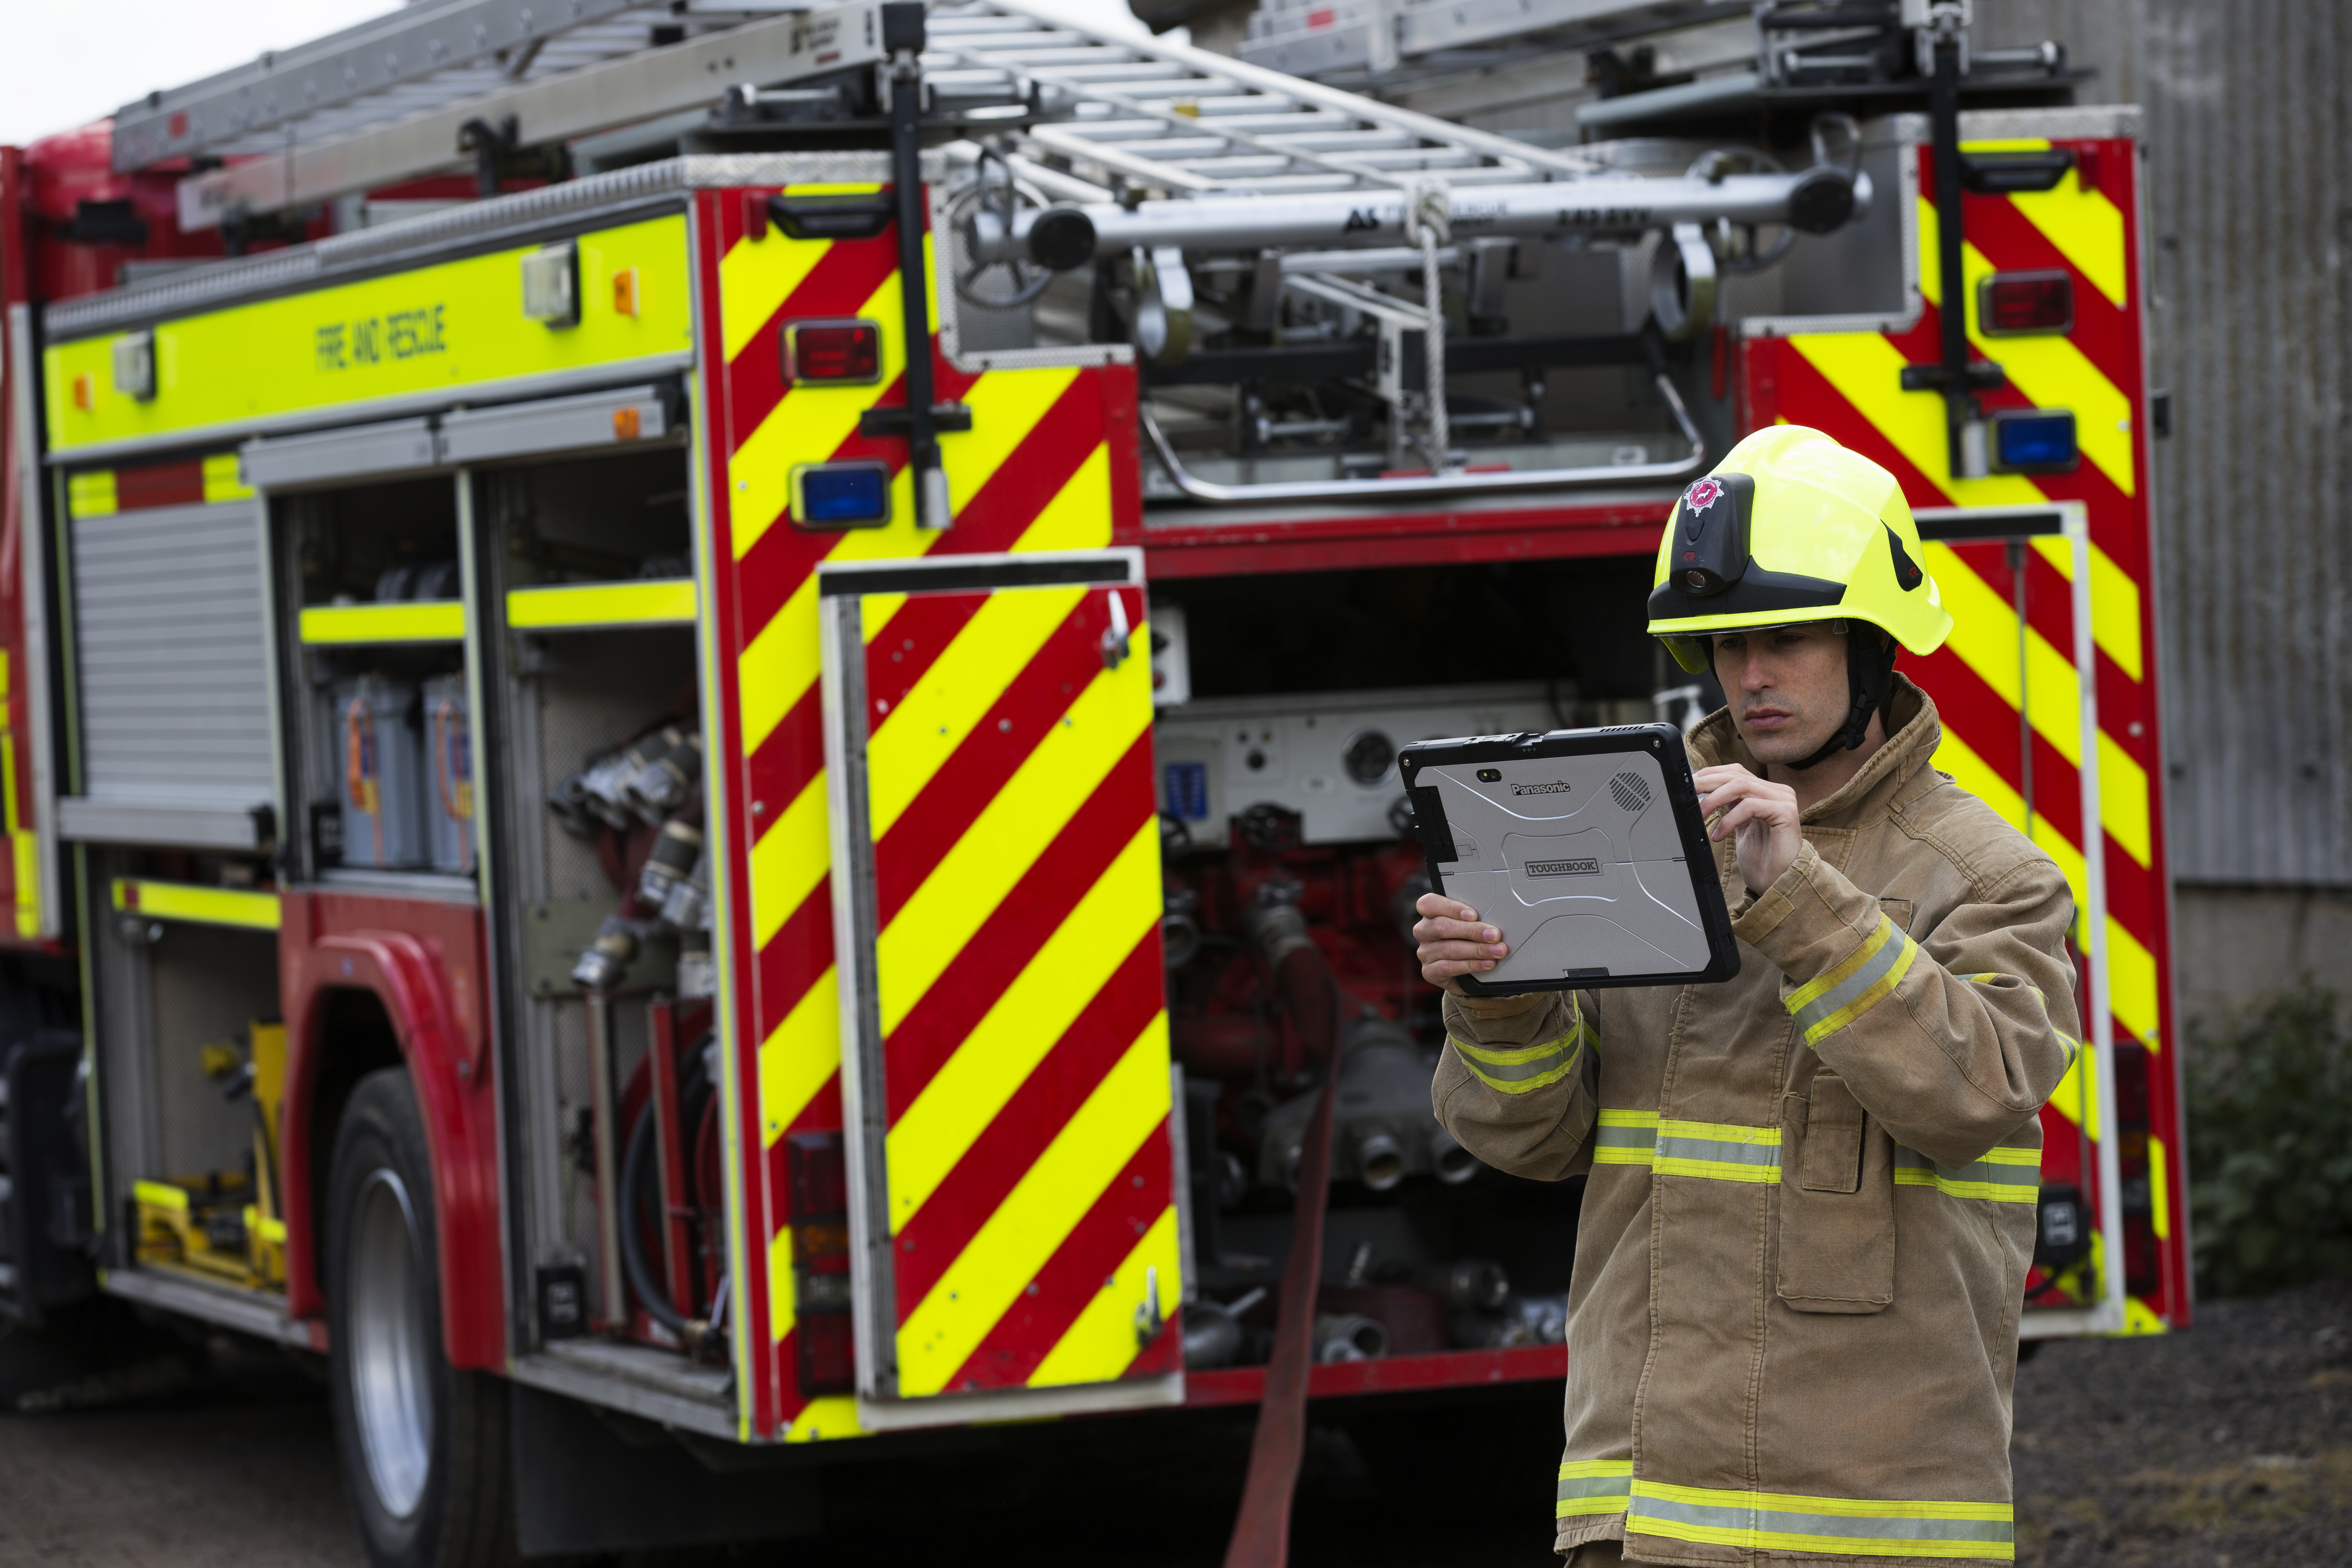 fire service and Toughbook 33